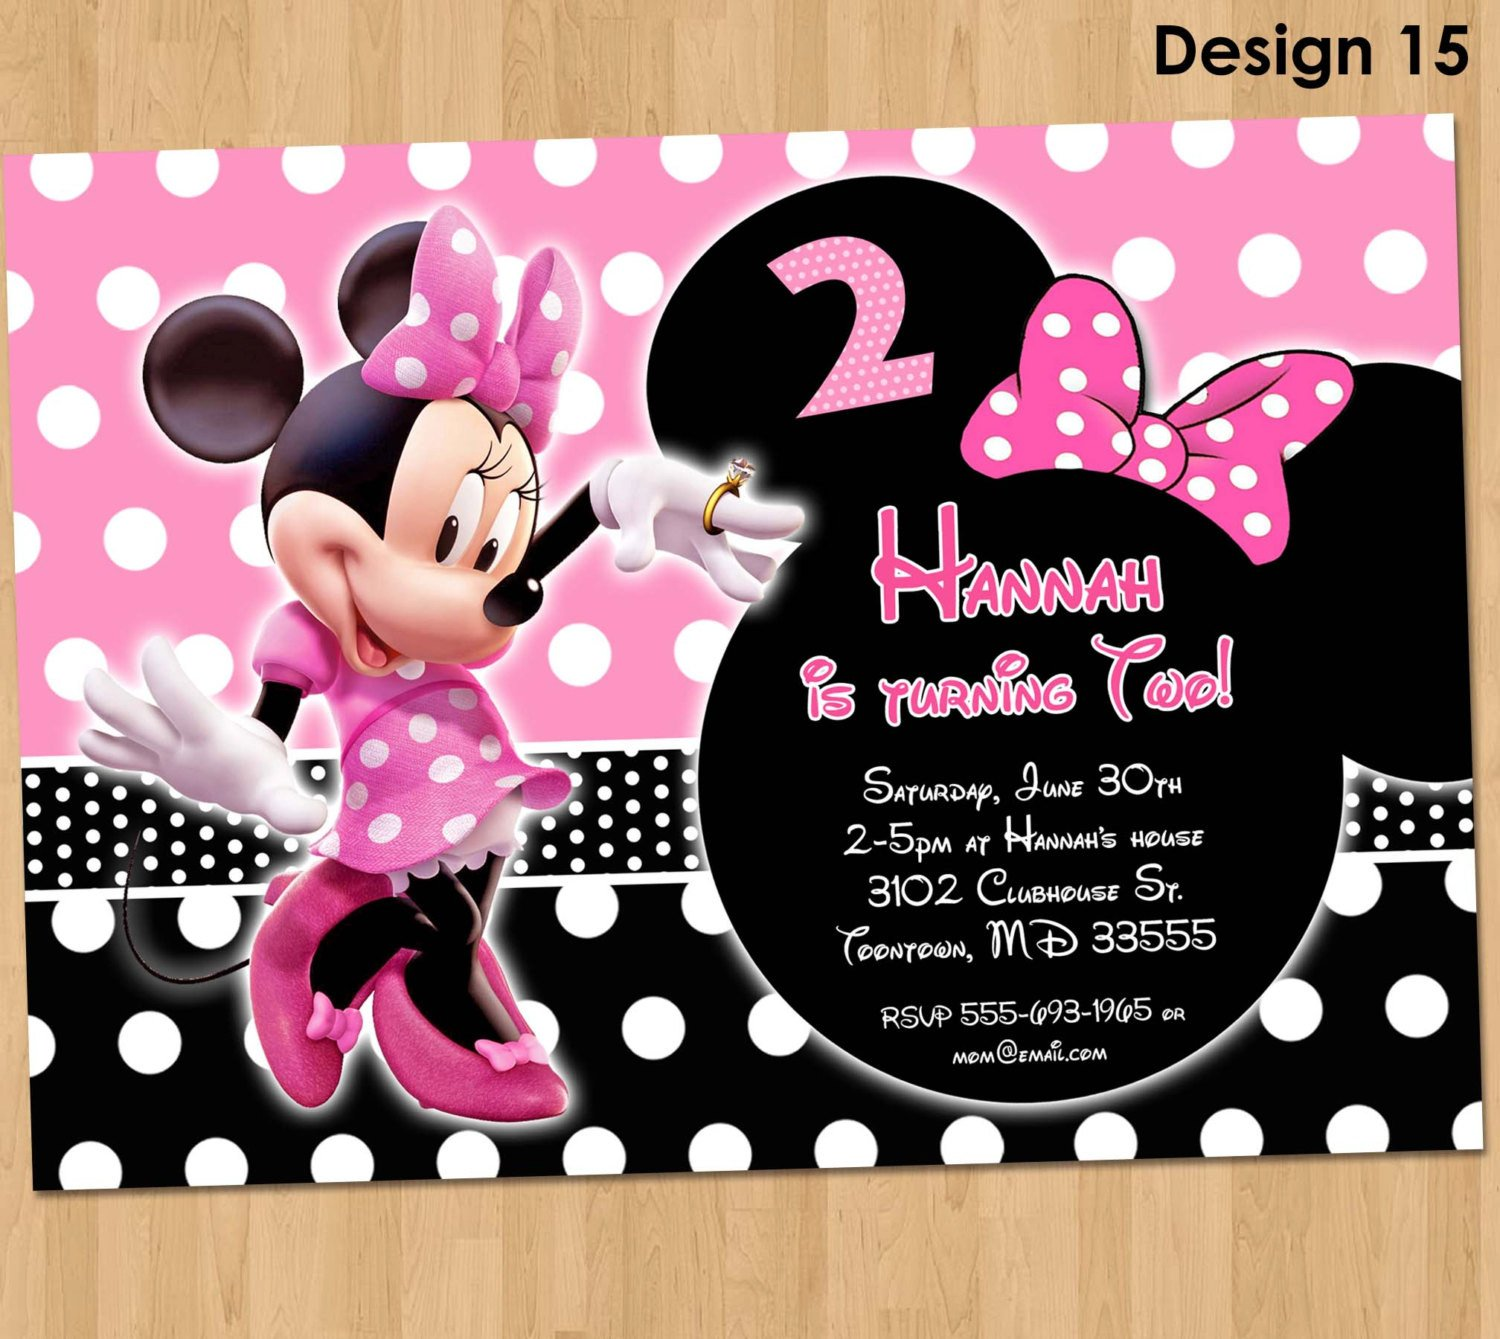 Minnie Mouse Invitation Maker Minnie Mouse Invitation Minnie Mouse Birthday Invitation